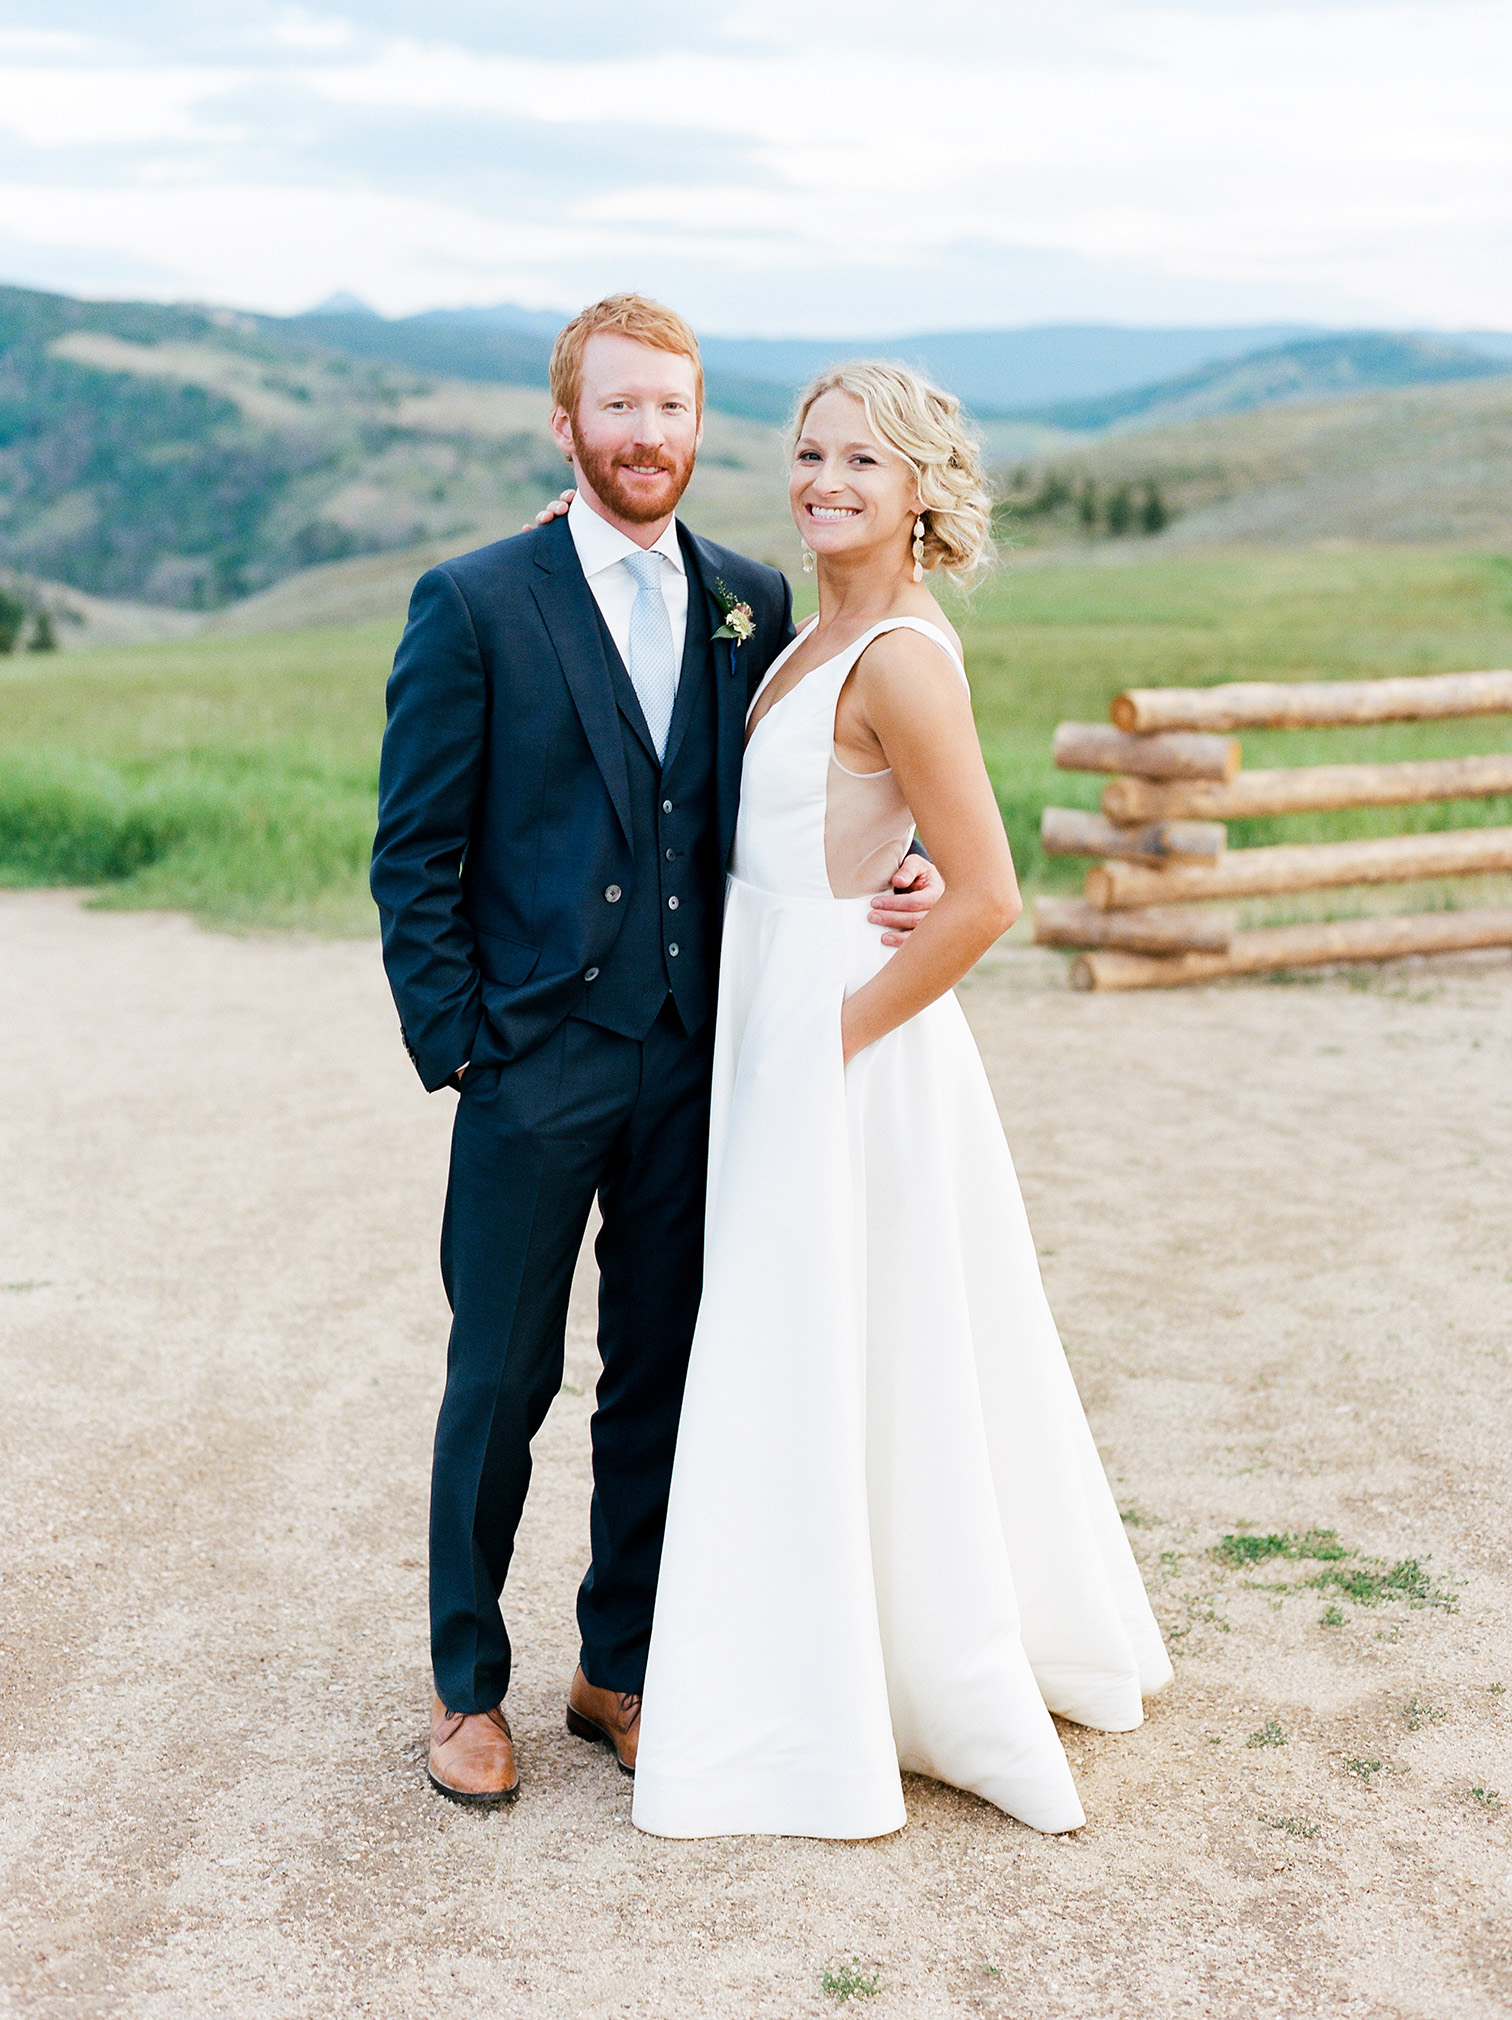 Colorado Destination Weddings, Summer Mountain Celebrations, Bride and Groom, Denver Photographers